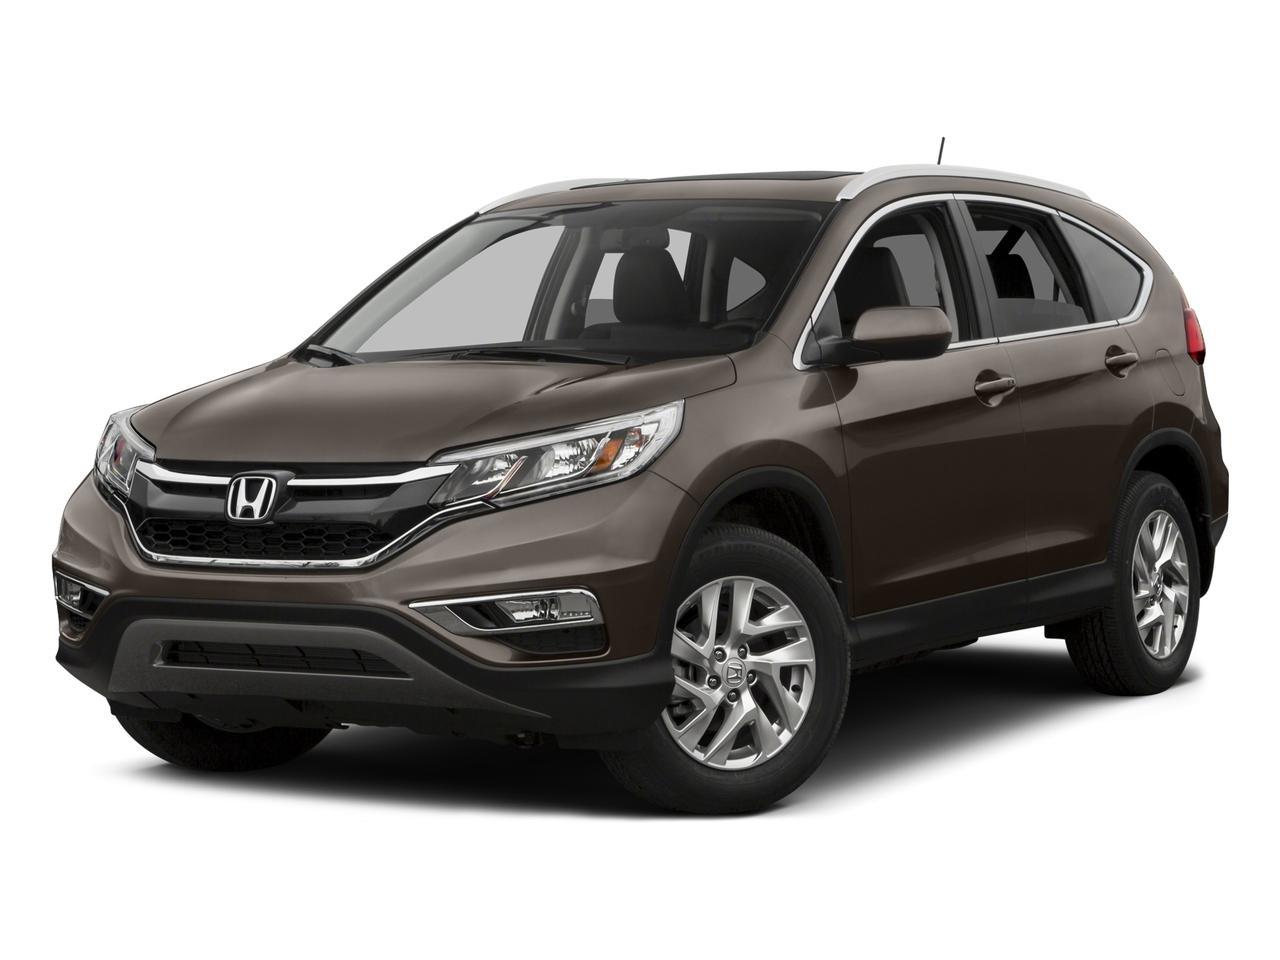 2015 Honda CR-V Vehicle Photo in Elyria, OH 44035